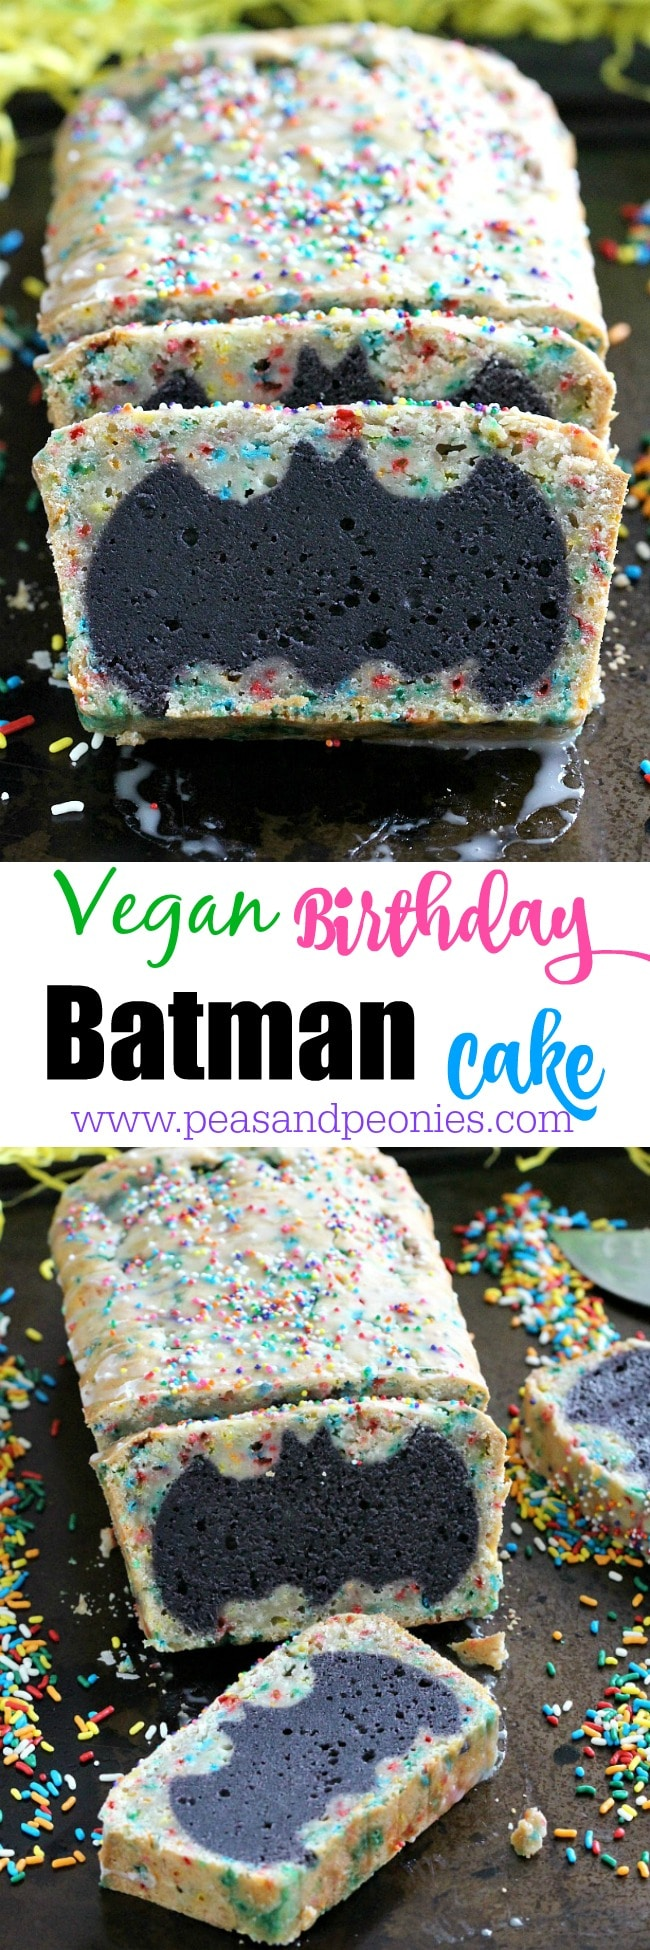 Easy to make Vegan Batman Cake is fun for the kids and adults. Easy ingredients for a fun, delicious cake for your next celebration.